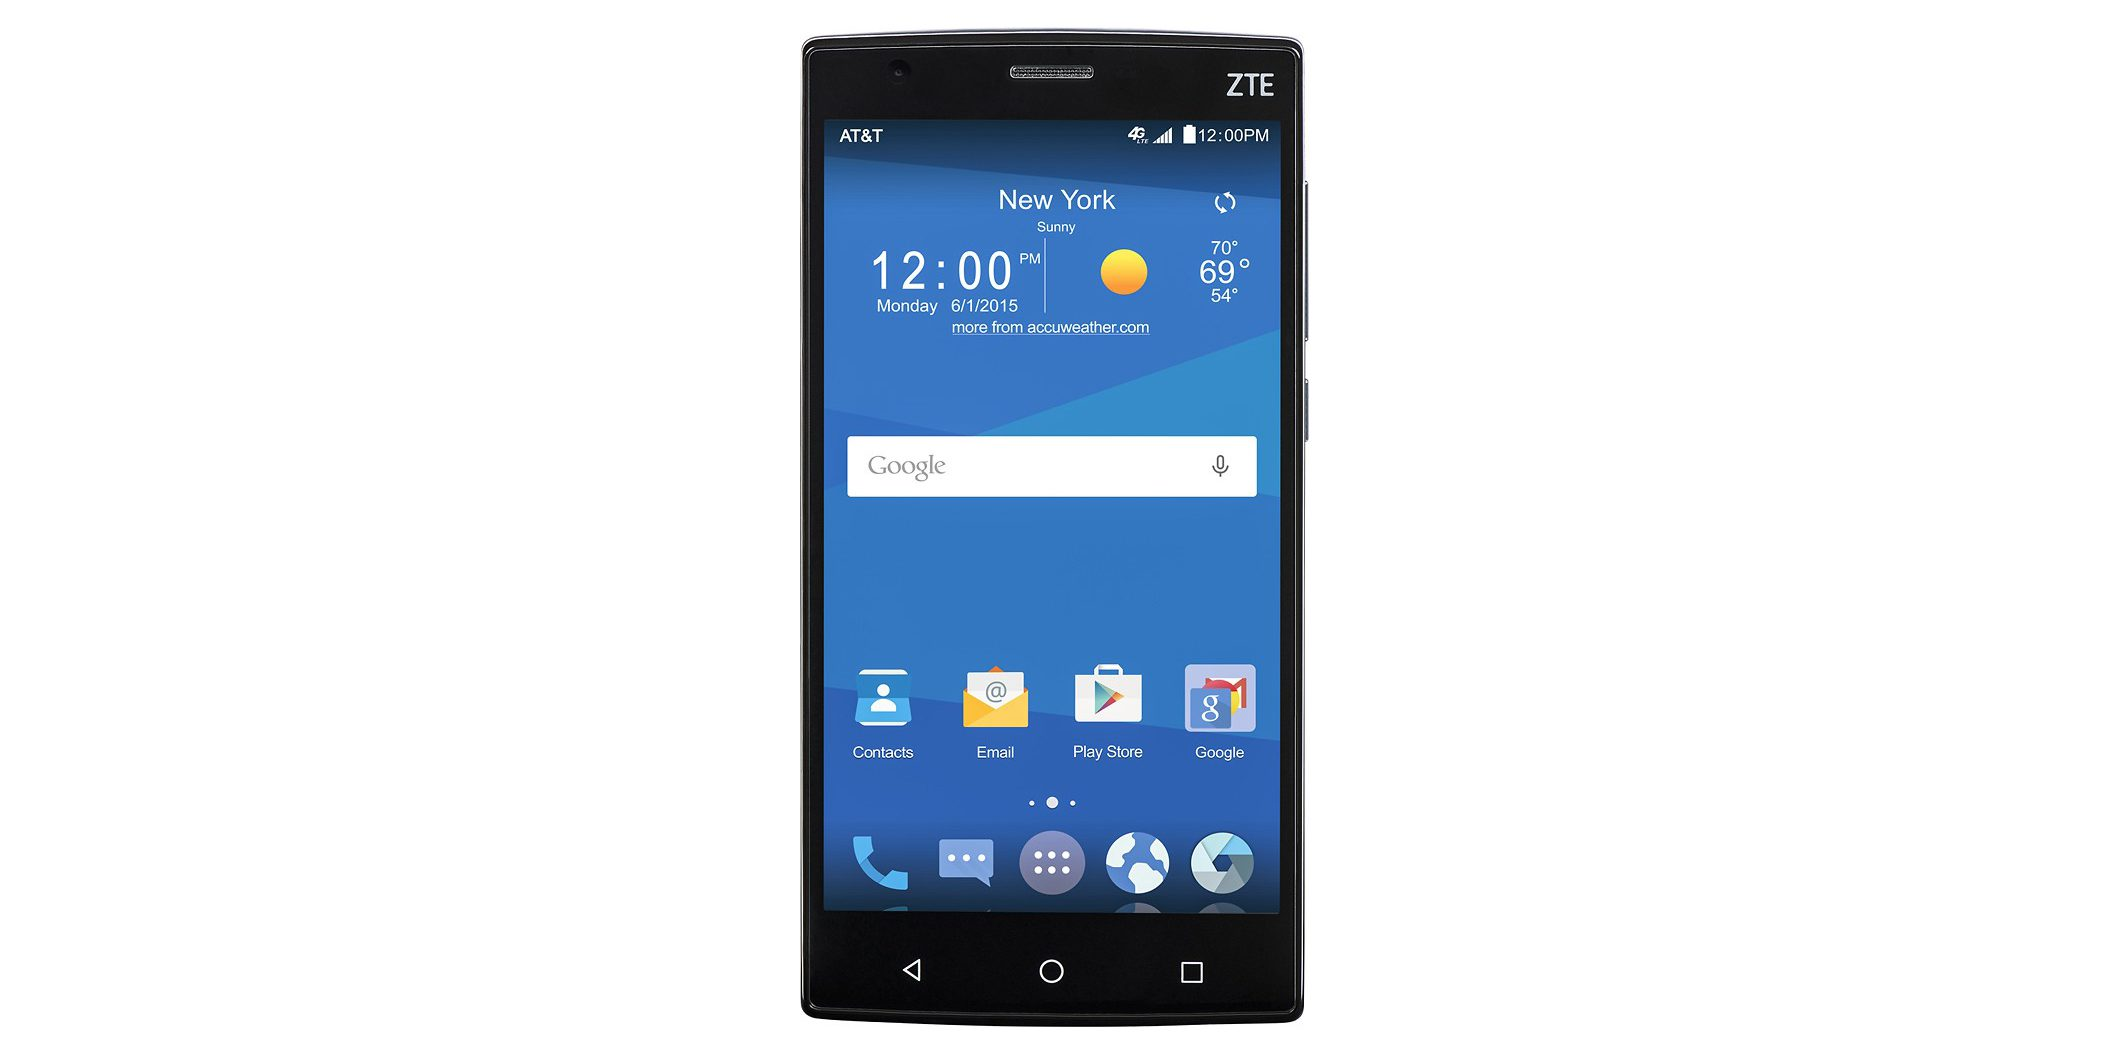 9to5Toys Lunch Break: ZTE Zmax 2 (unlocked) $50, Chromecast